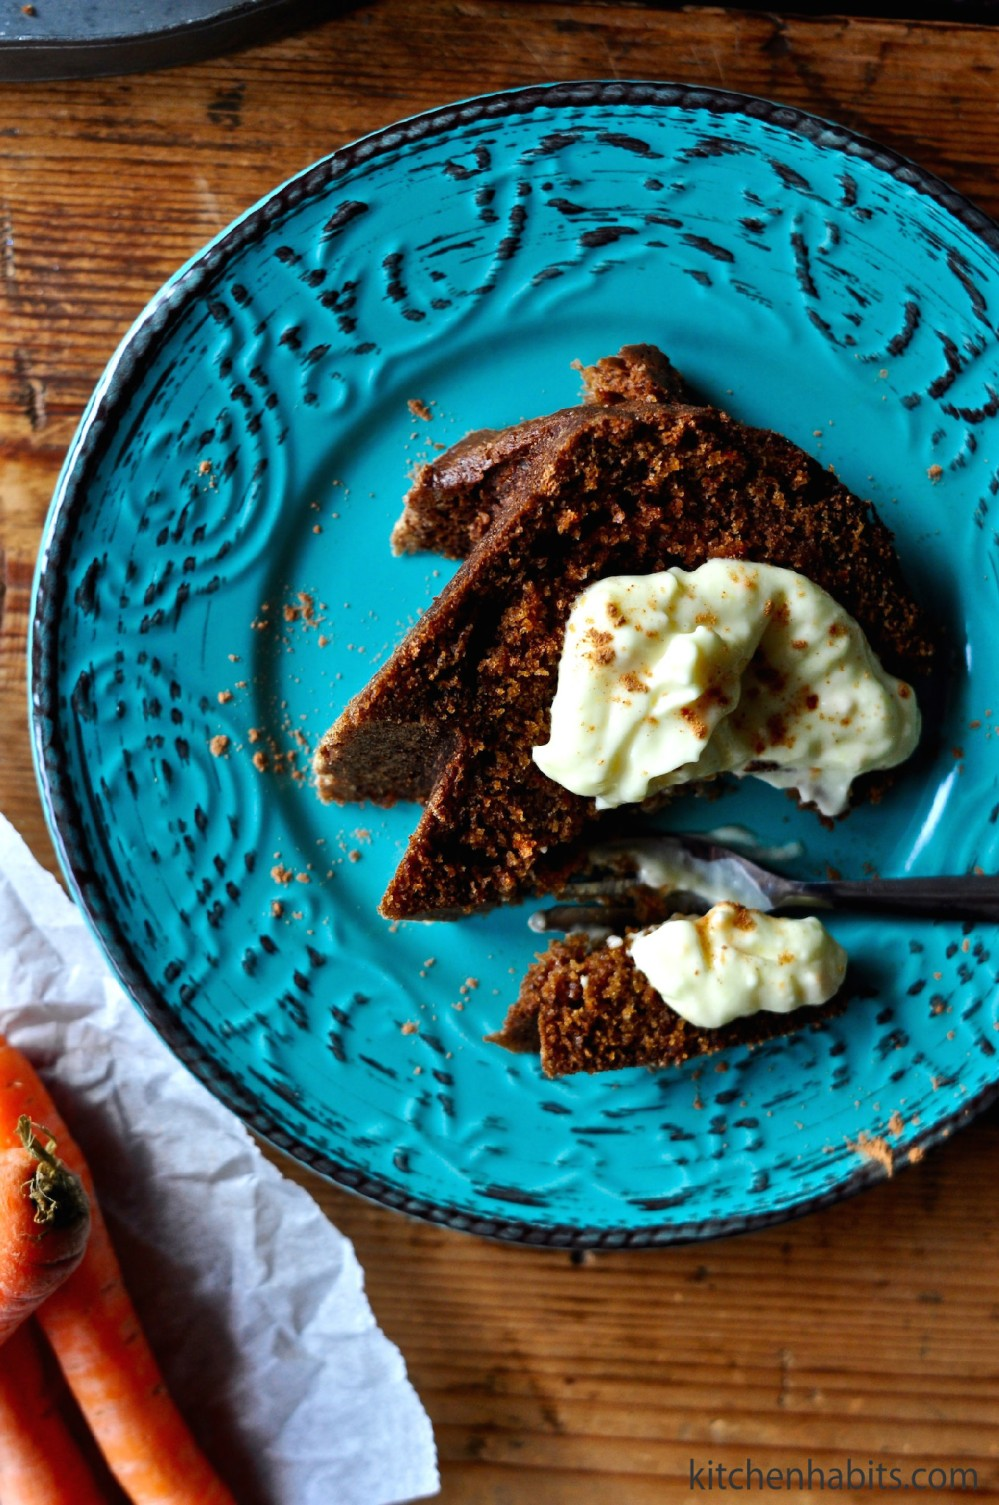 carrot_cake_kitchenhabitscom2edited